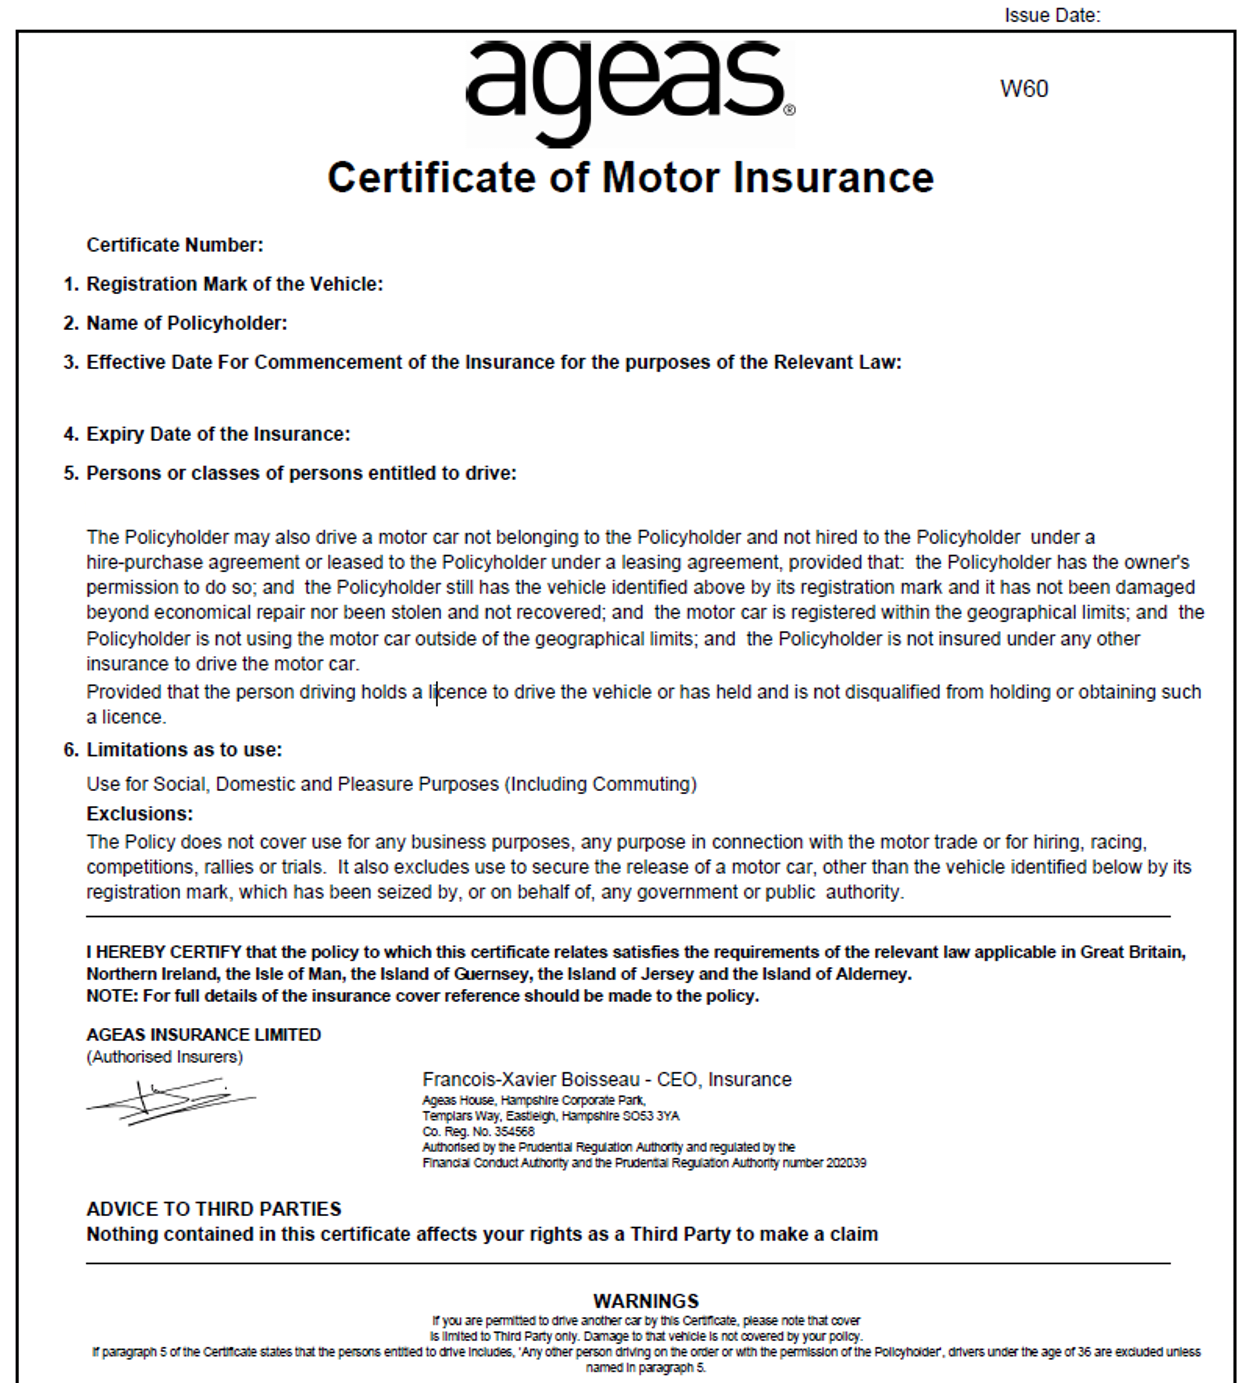 Picture of a sample certificate of motor insurance